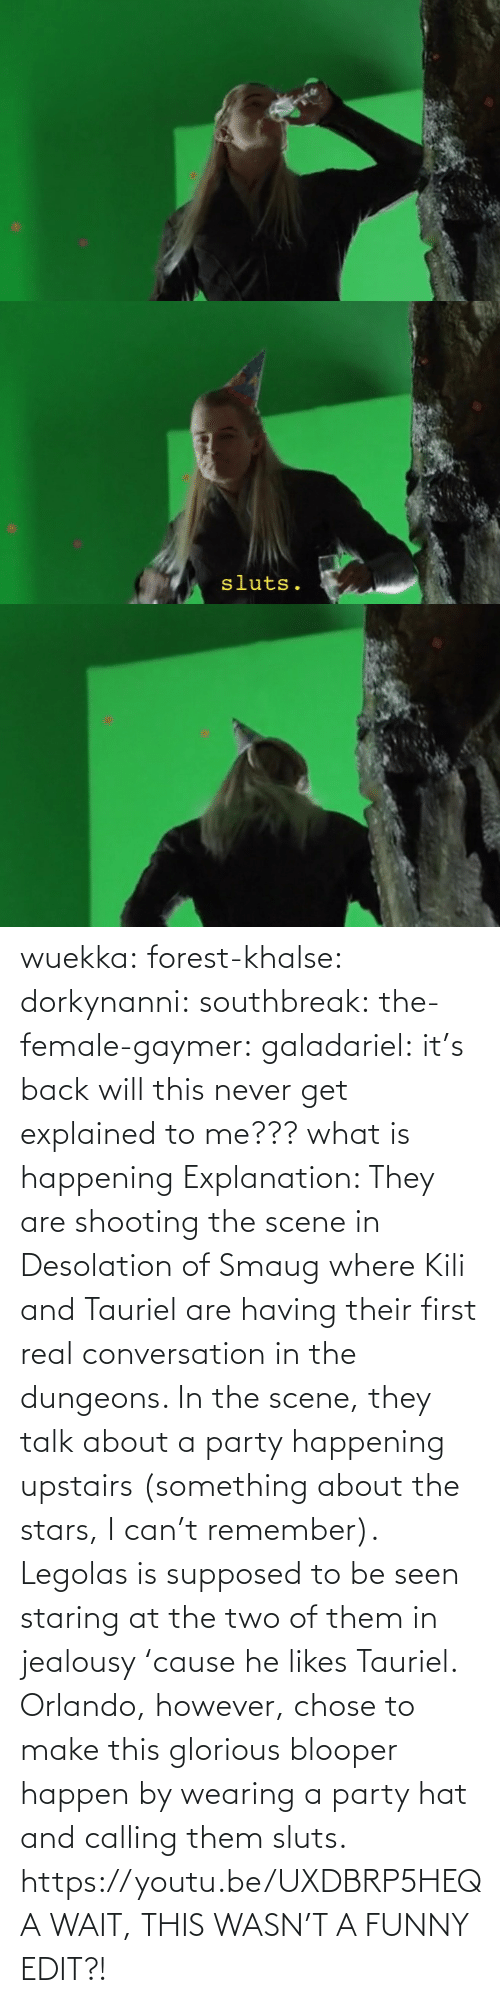 hat: wuekka:  forest-khalse:   dorkynanni:  southbreak:   the-female-gaymer:   galadariel:  it's back   will this never get explained to me???    what is happening    Explanation:  They are shooting the scene in Desolation of Smaug where Kili and Tauriel are having their first real conversation in the dungeons.  In the scene, they talk about a party happening upstairs (something about the stars, I can't remember). Legolas is supposed to be seen staring at the two of them in jealousy 'cause he likes Tauriel.  Orlando, however, chose to make this glorious blooper happen by wearing a party hat and calling them sluts.    https://youtu.be/UXDBRP5HEQA    WAIT, THIS WASN'T A FUNNY EDIT?!